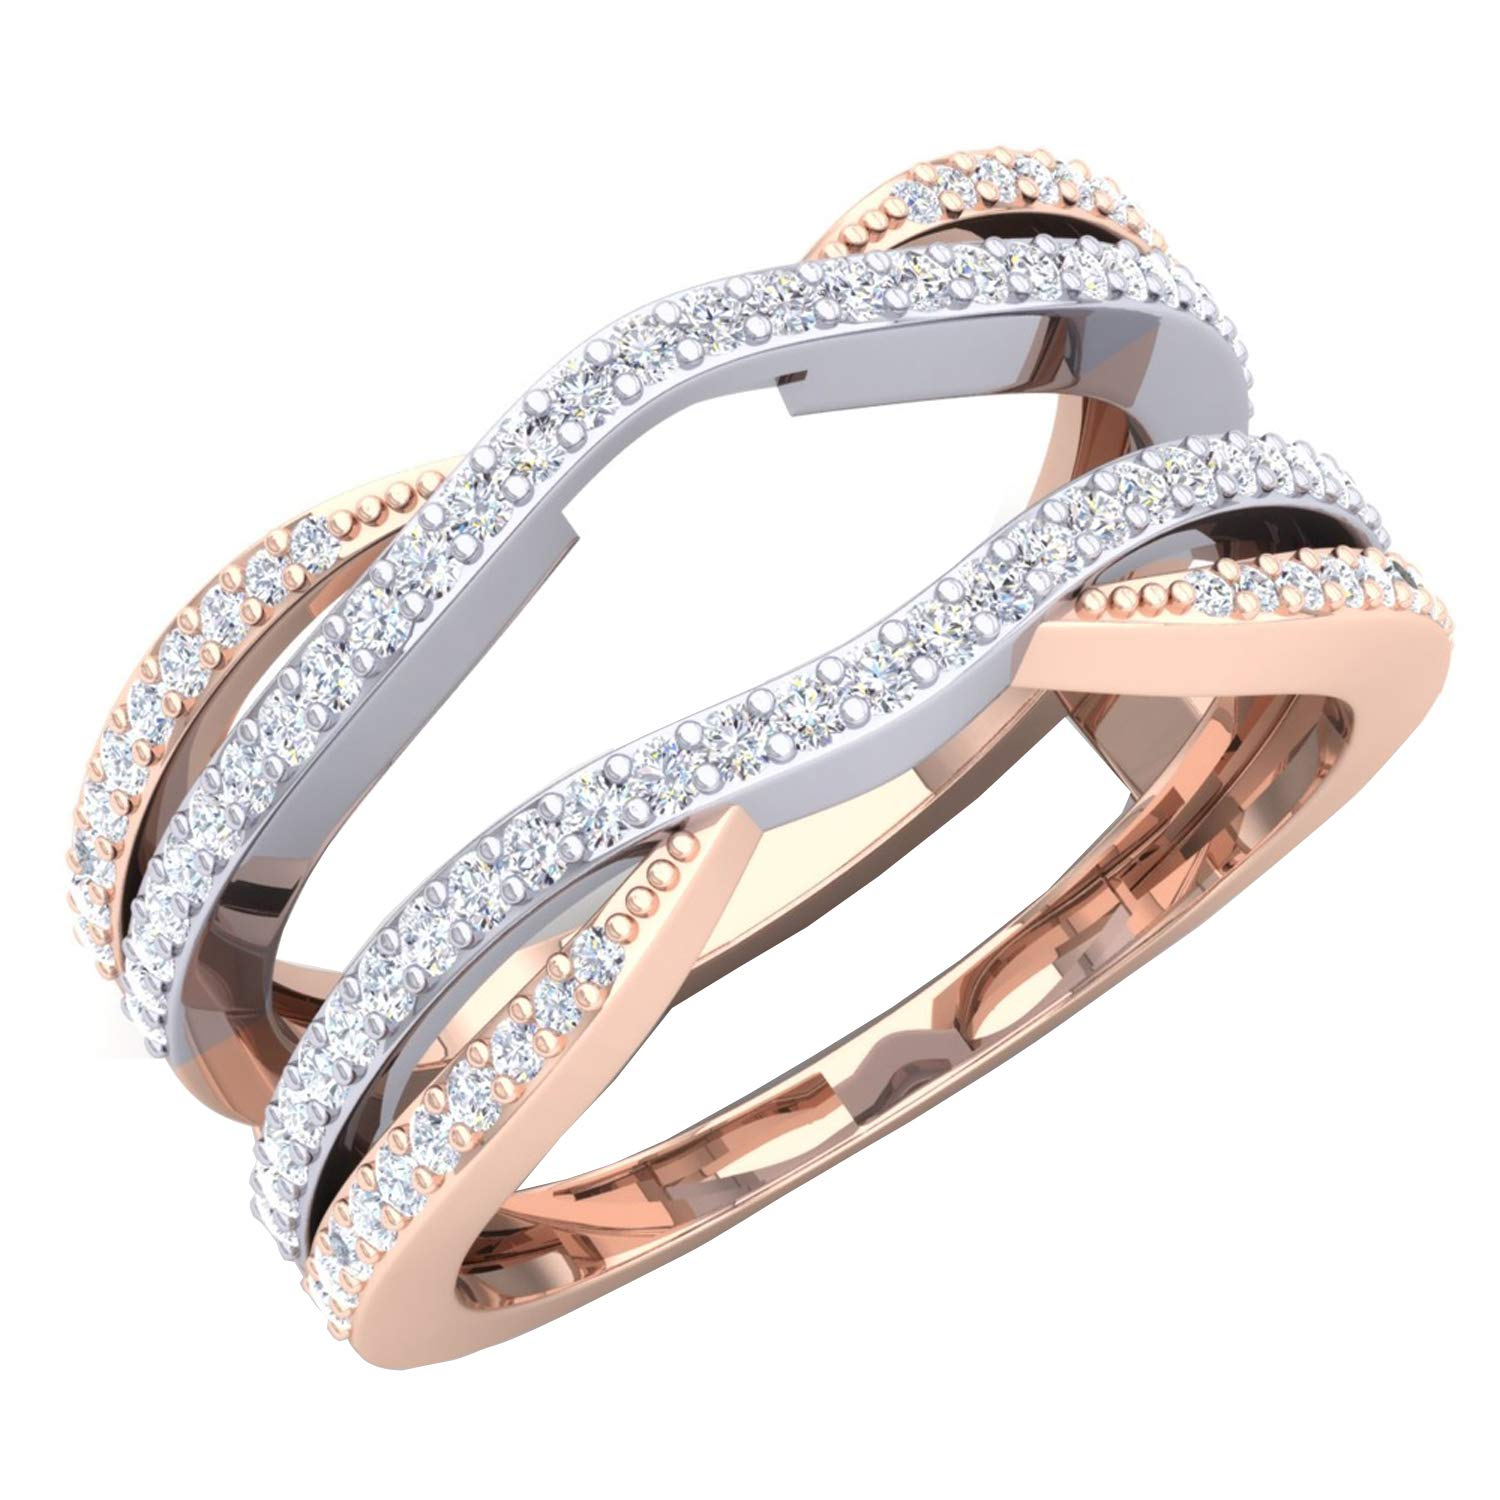 Dazzlingrock Collection 0.50 Carat (ctw) 10K White & Two Tone Diamond Wedding Band Guard Double Ring 1/2 CT, Rose Gold, Size 6.5